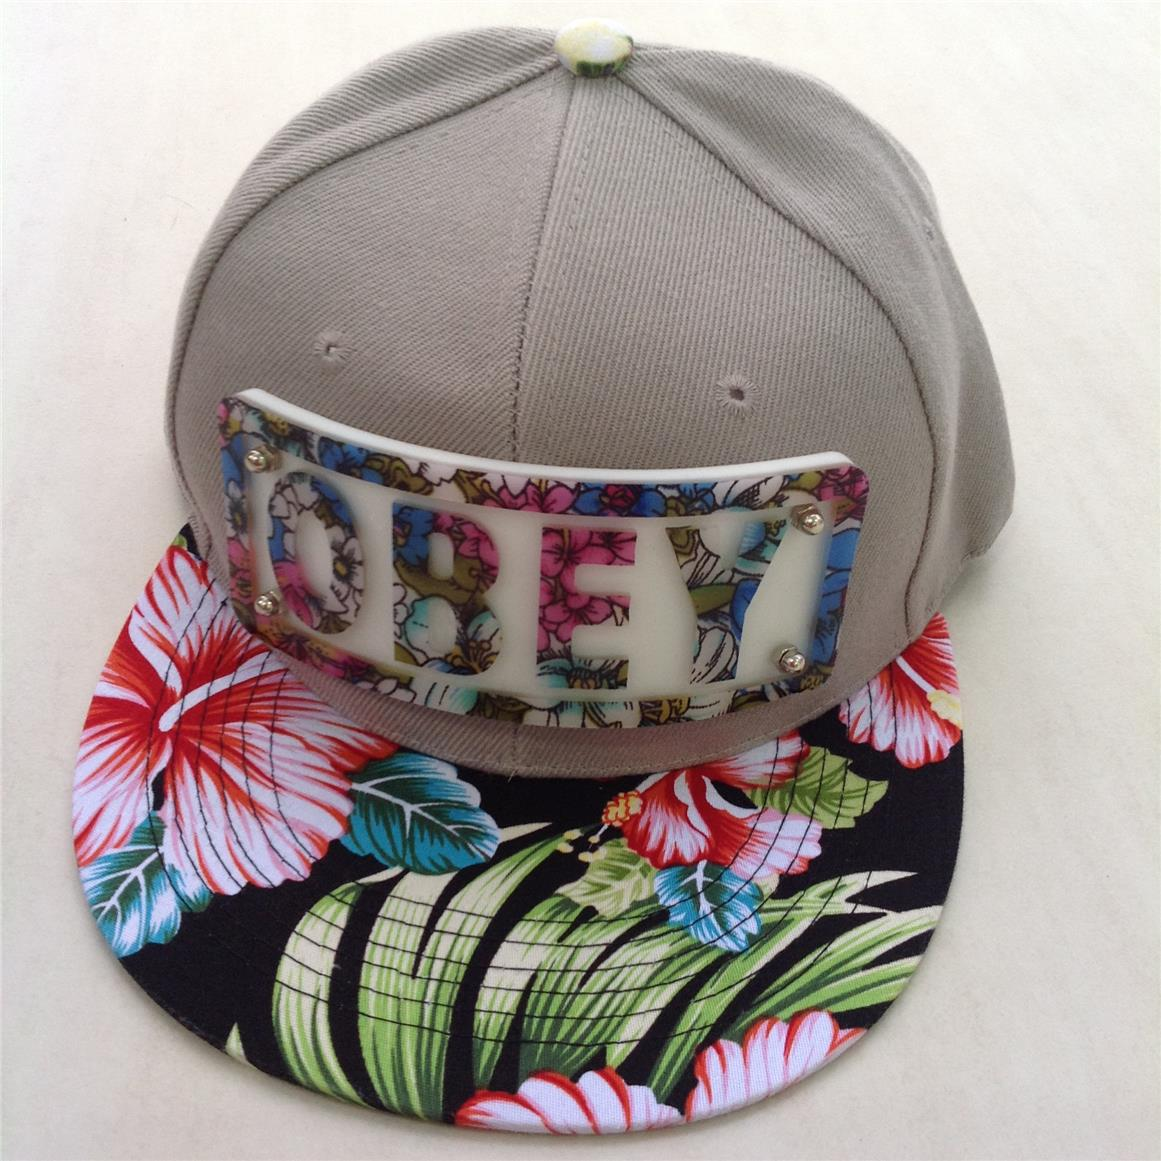 ... closeout latest model obey 2014 snapback hip hop baseball cap grey  flower. u2039 u203a 2f2a7 7d547848cadd